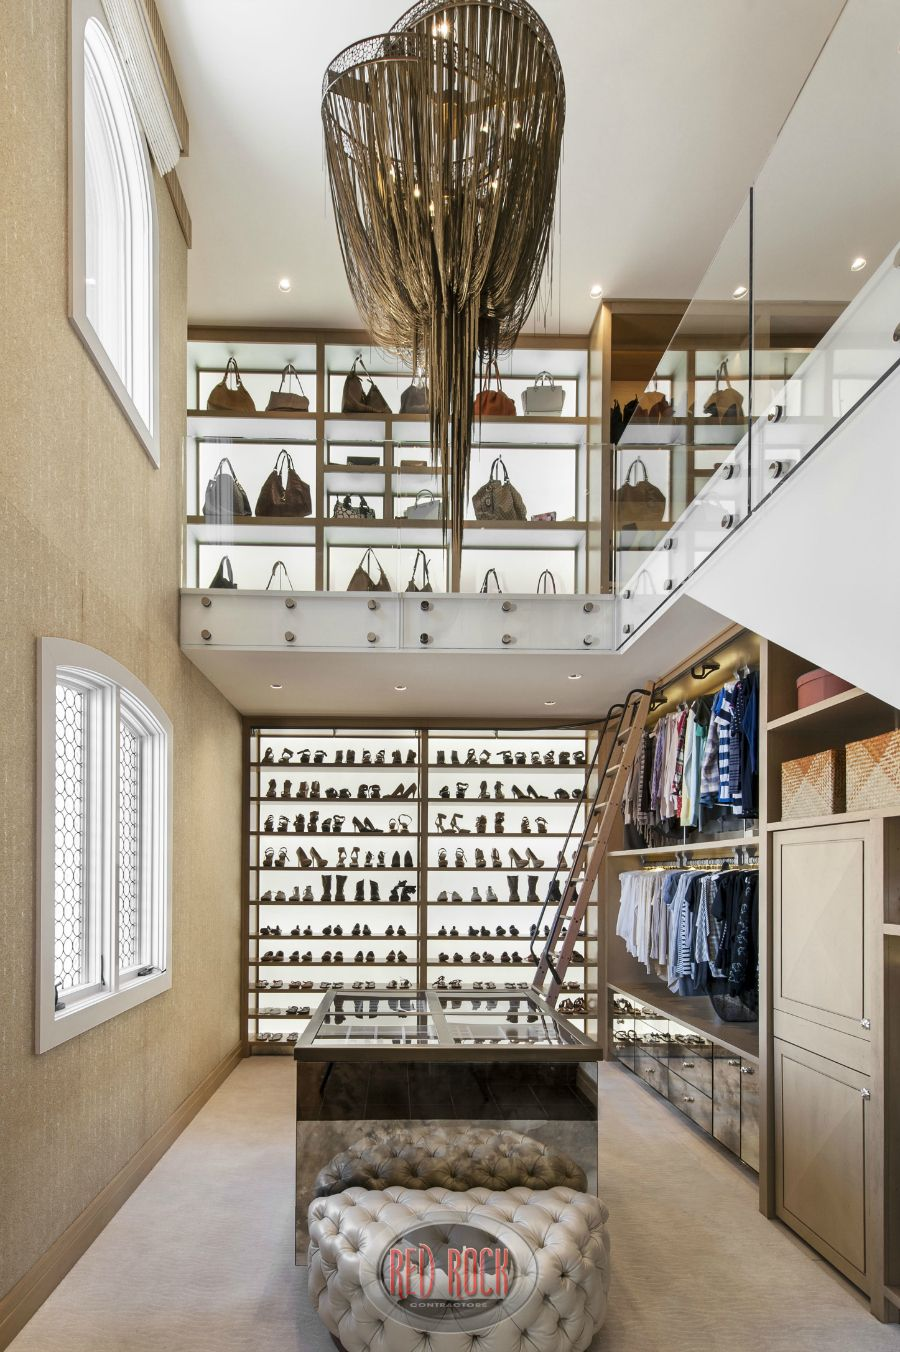 70 Awesome Walk In Closet Ideas Photos Closet Designs Walk In Closet Design Closet Design